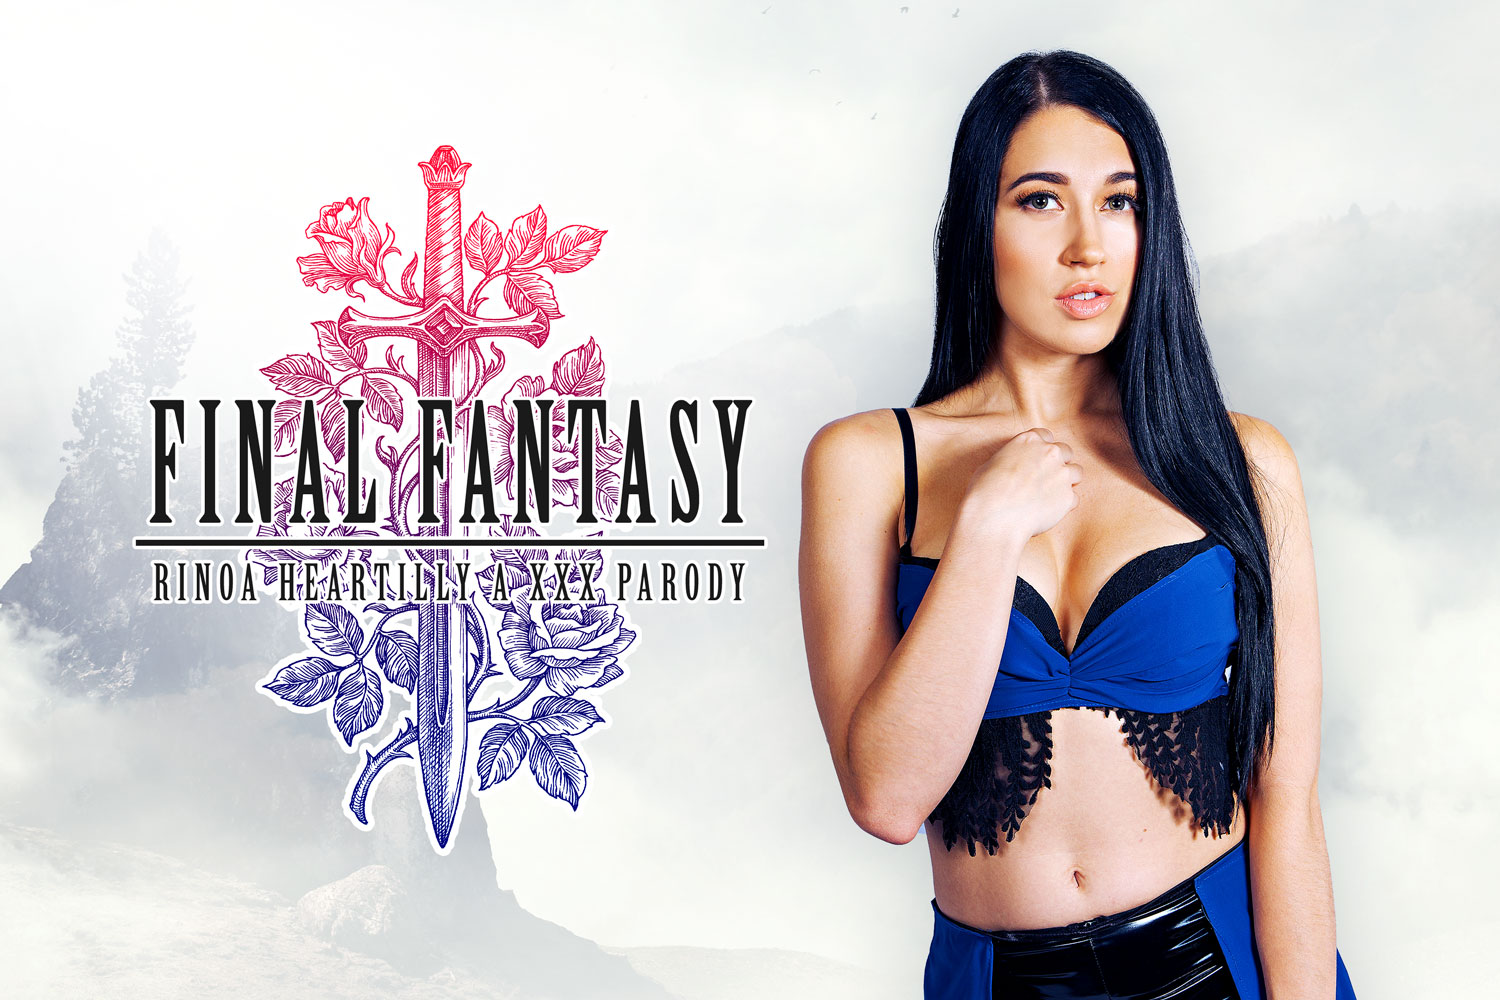 Final Fantasy: Rinoa Heartilly A XXX Parody Alex Coal